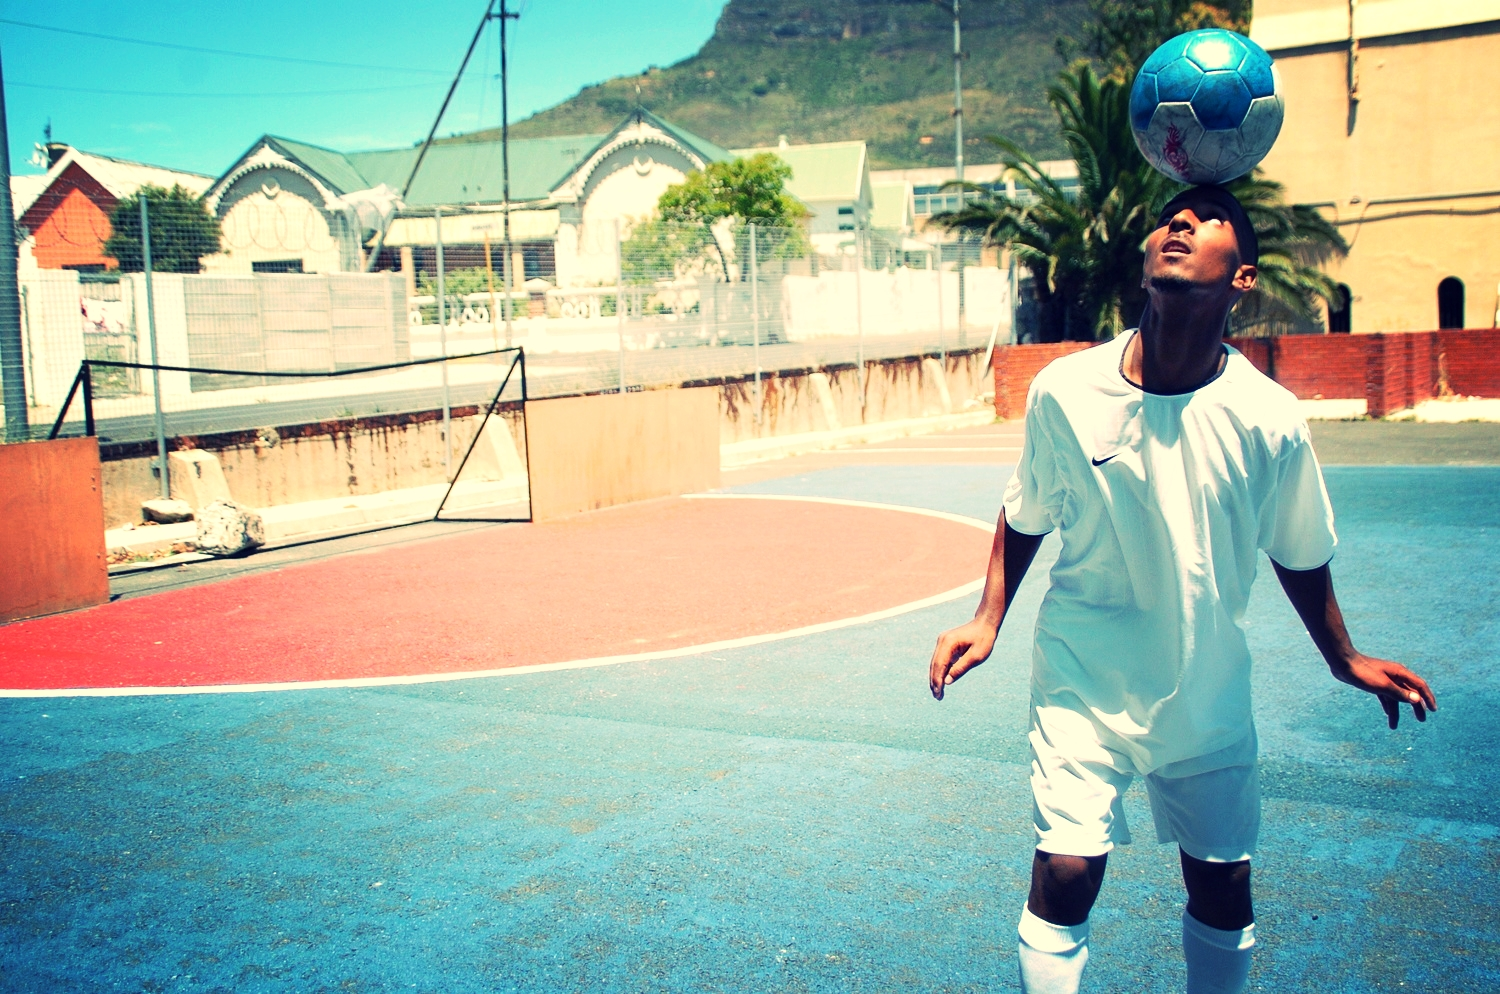 STREETBALL - A Feature Documentary directed by Demetrius Wren following a street soccer league from Cape Town, South Africa.